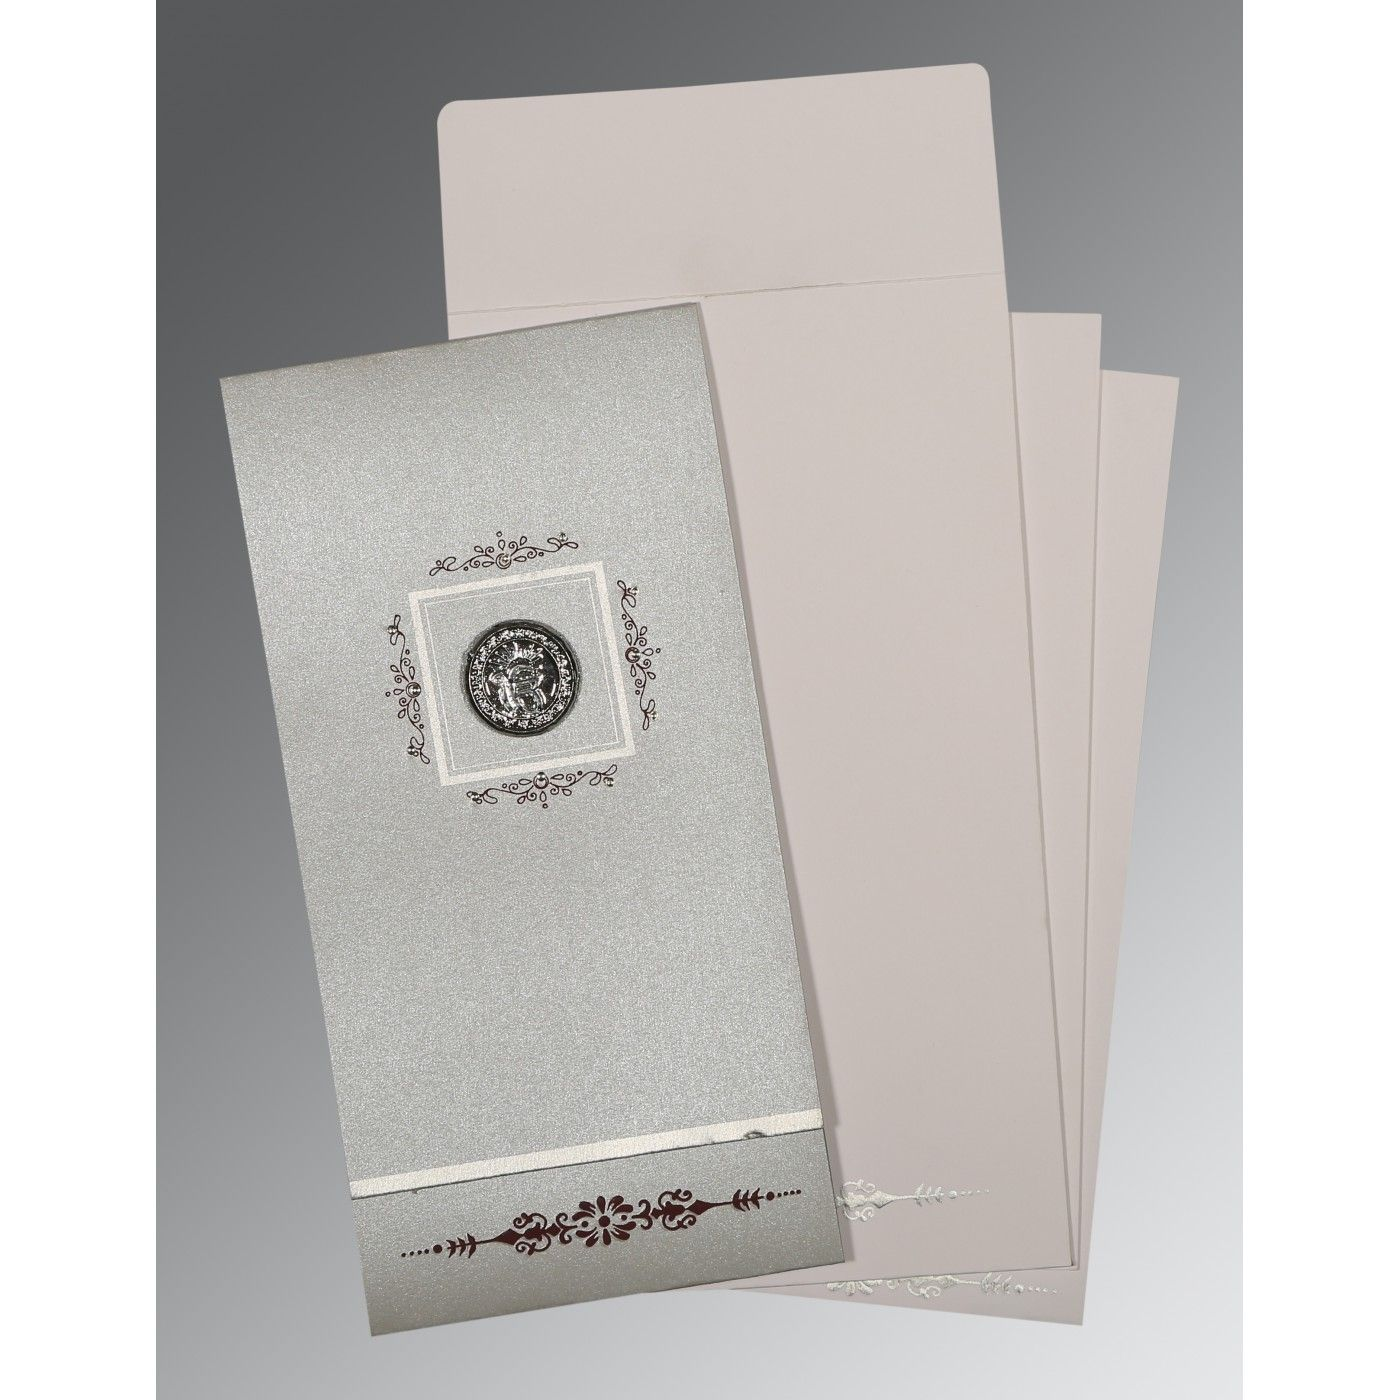 LIGHT GREY SHIMMERY EMBOSSED WEDDING CARD : CS-1427 - IndianWeddingCards